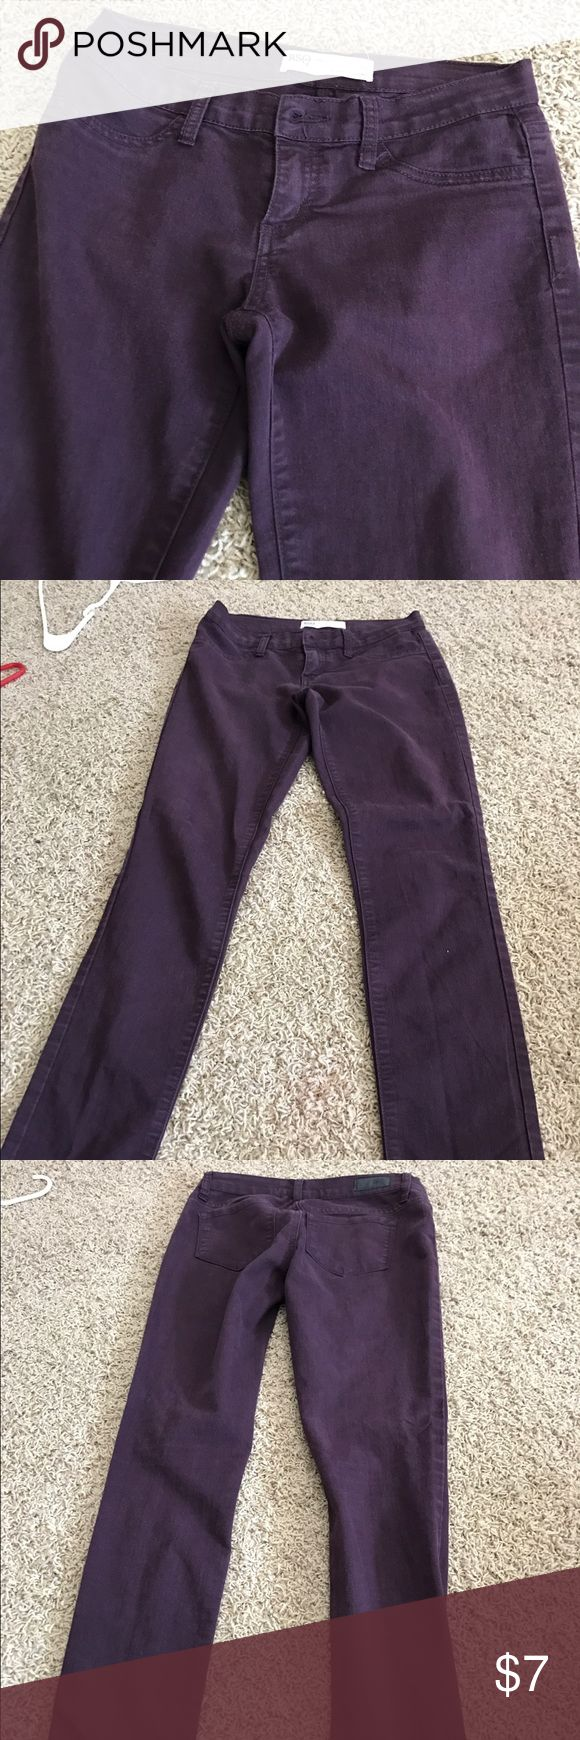 Purple skinny jeans! Nice purple skinny jeans! These are also comfy on the inside and are a fun color for both spring and fall! Jeans Skinny